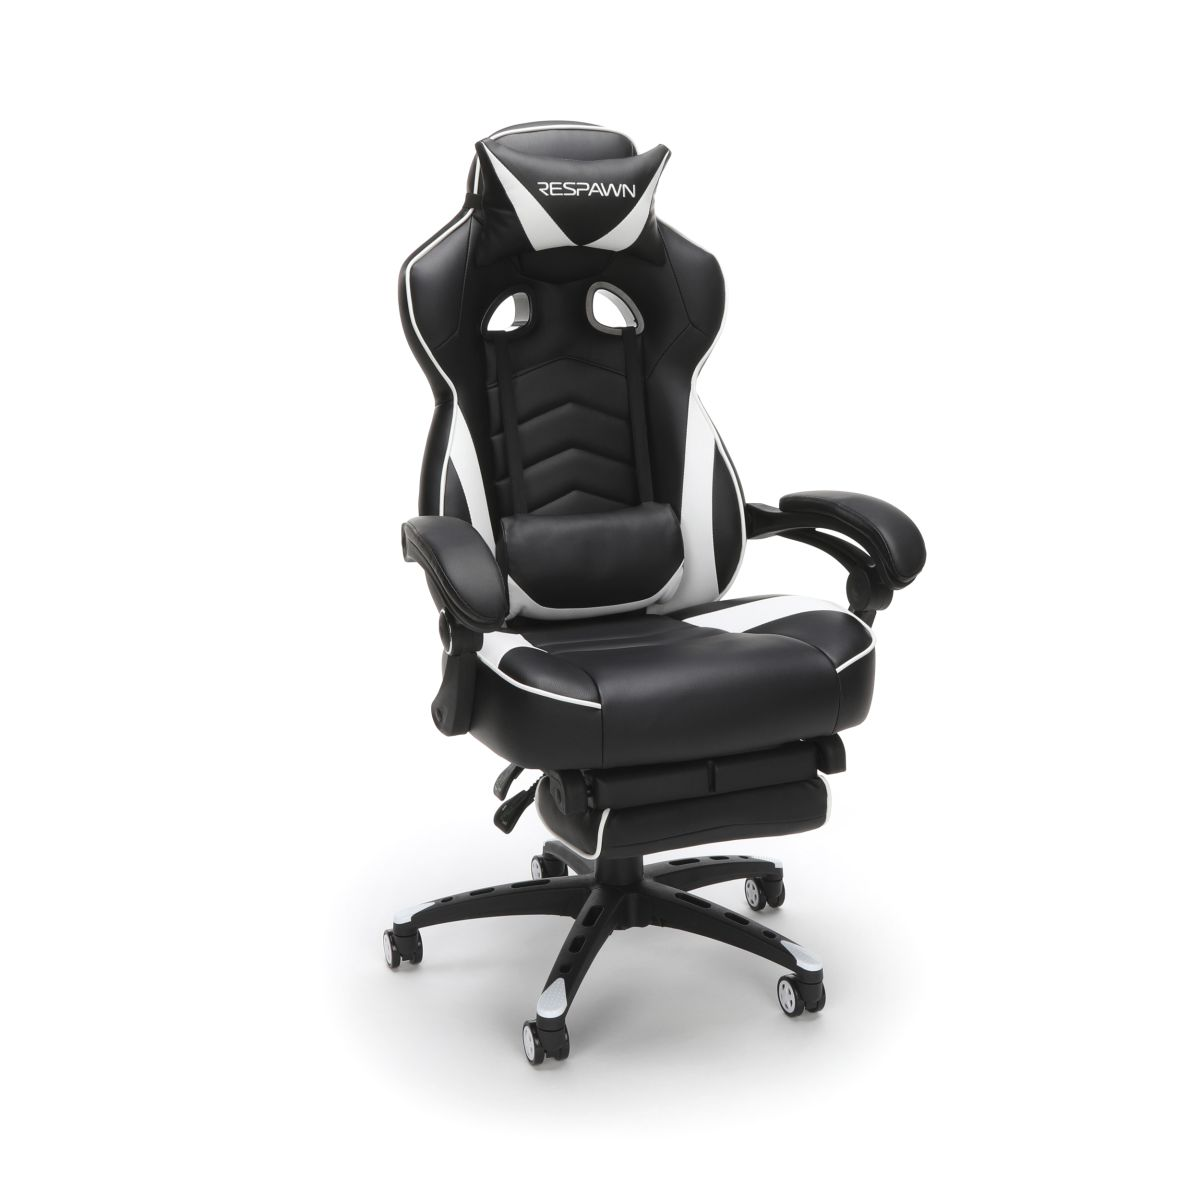 Game Harder With The Respawn 110 Gaming Chair For Just